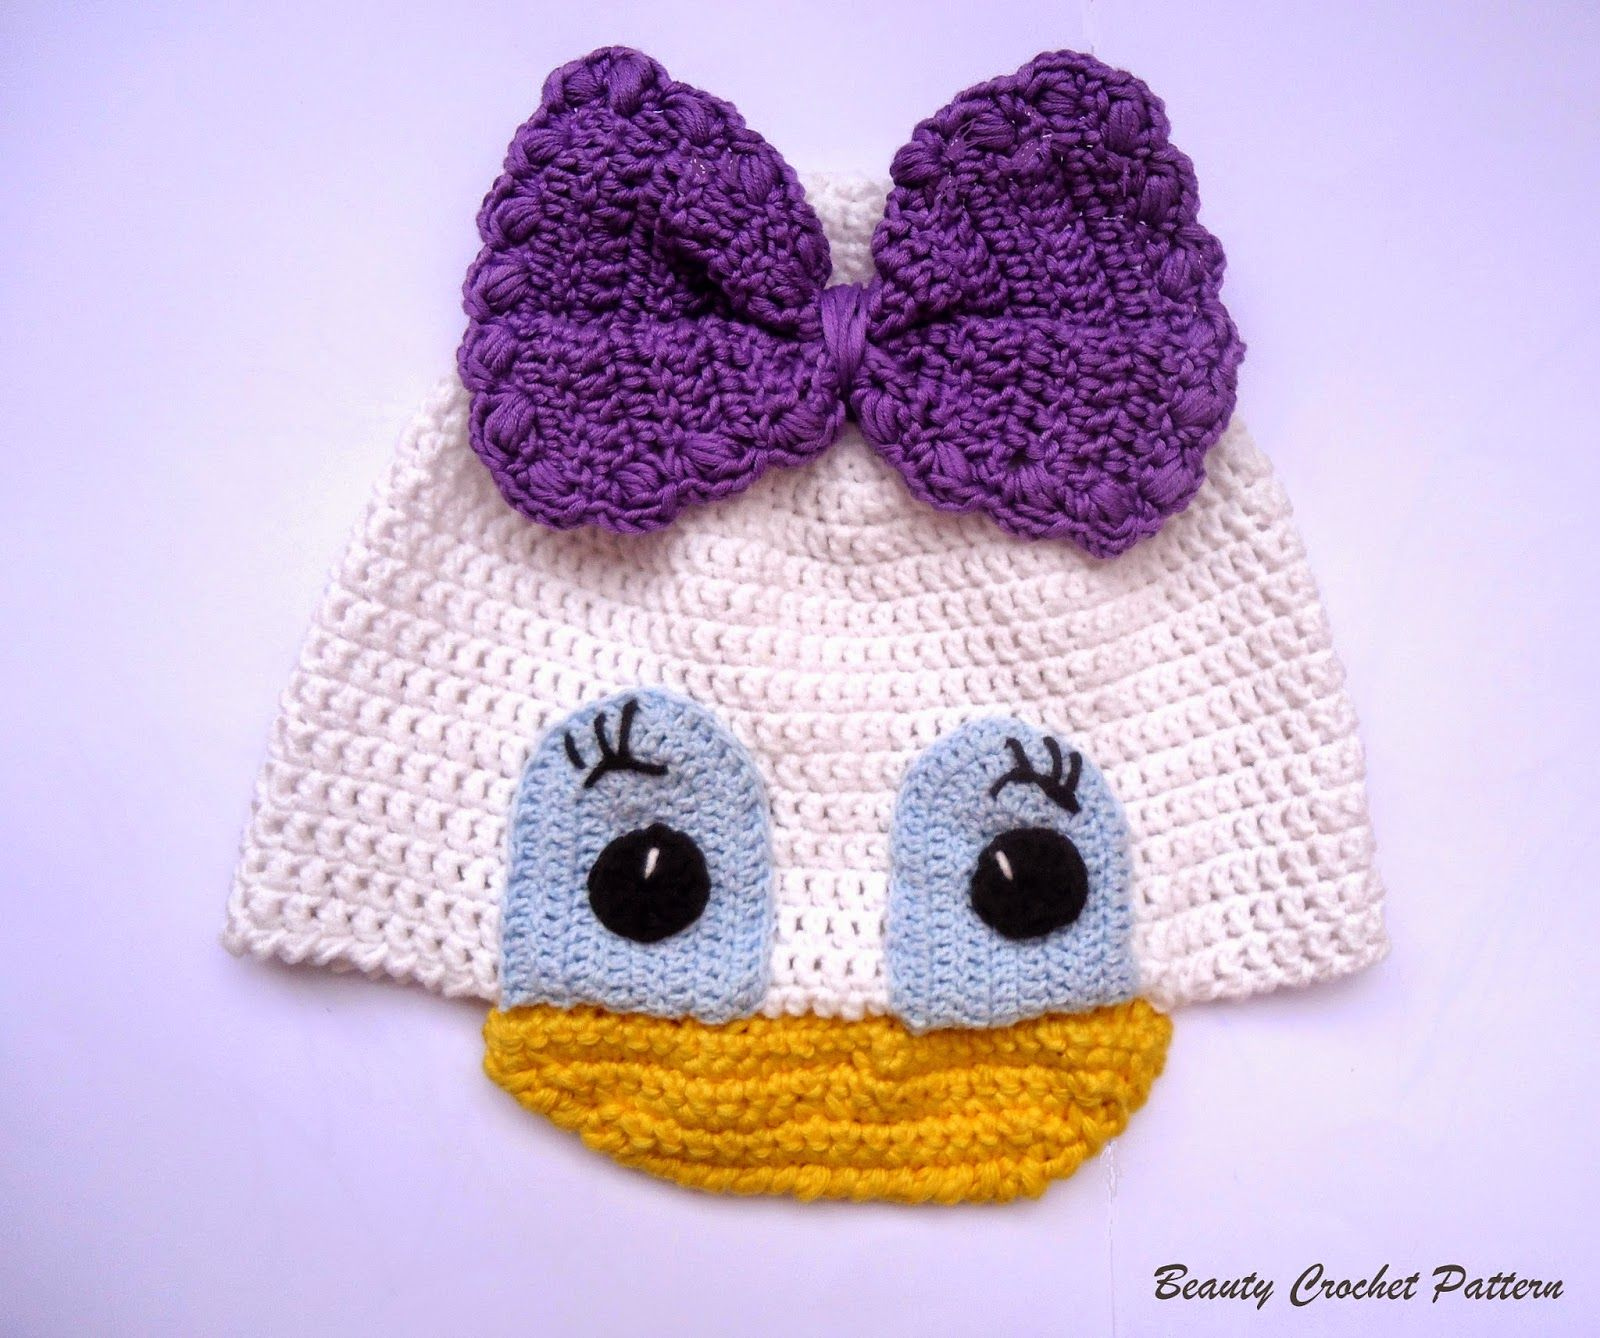 Beauty Crochet Pattern: DAISY CROCHET HAT PATTERN | crochet ...